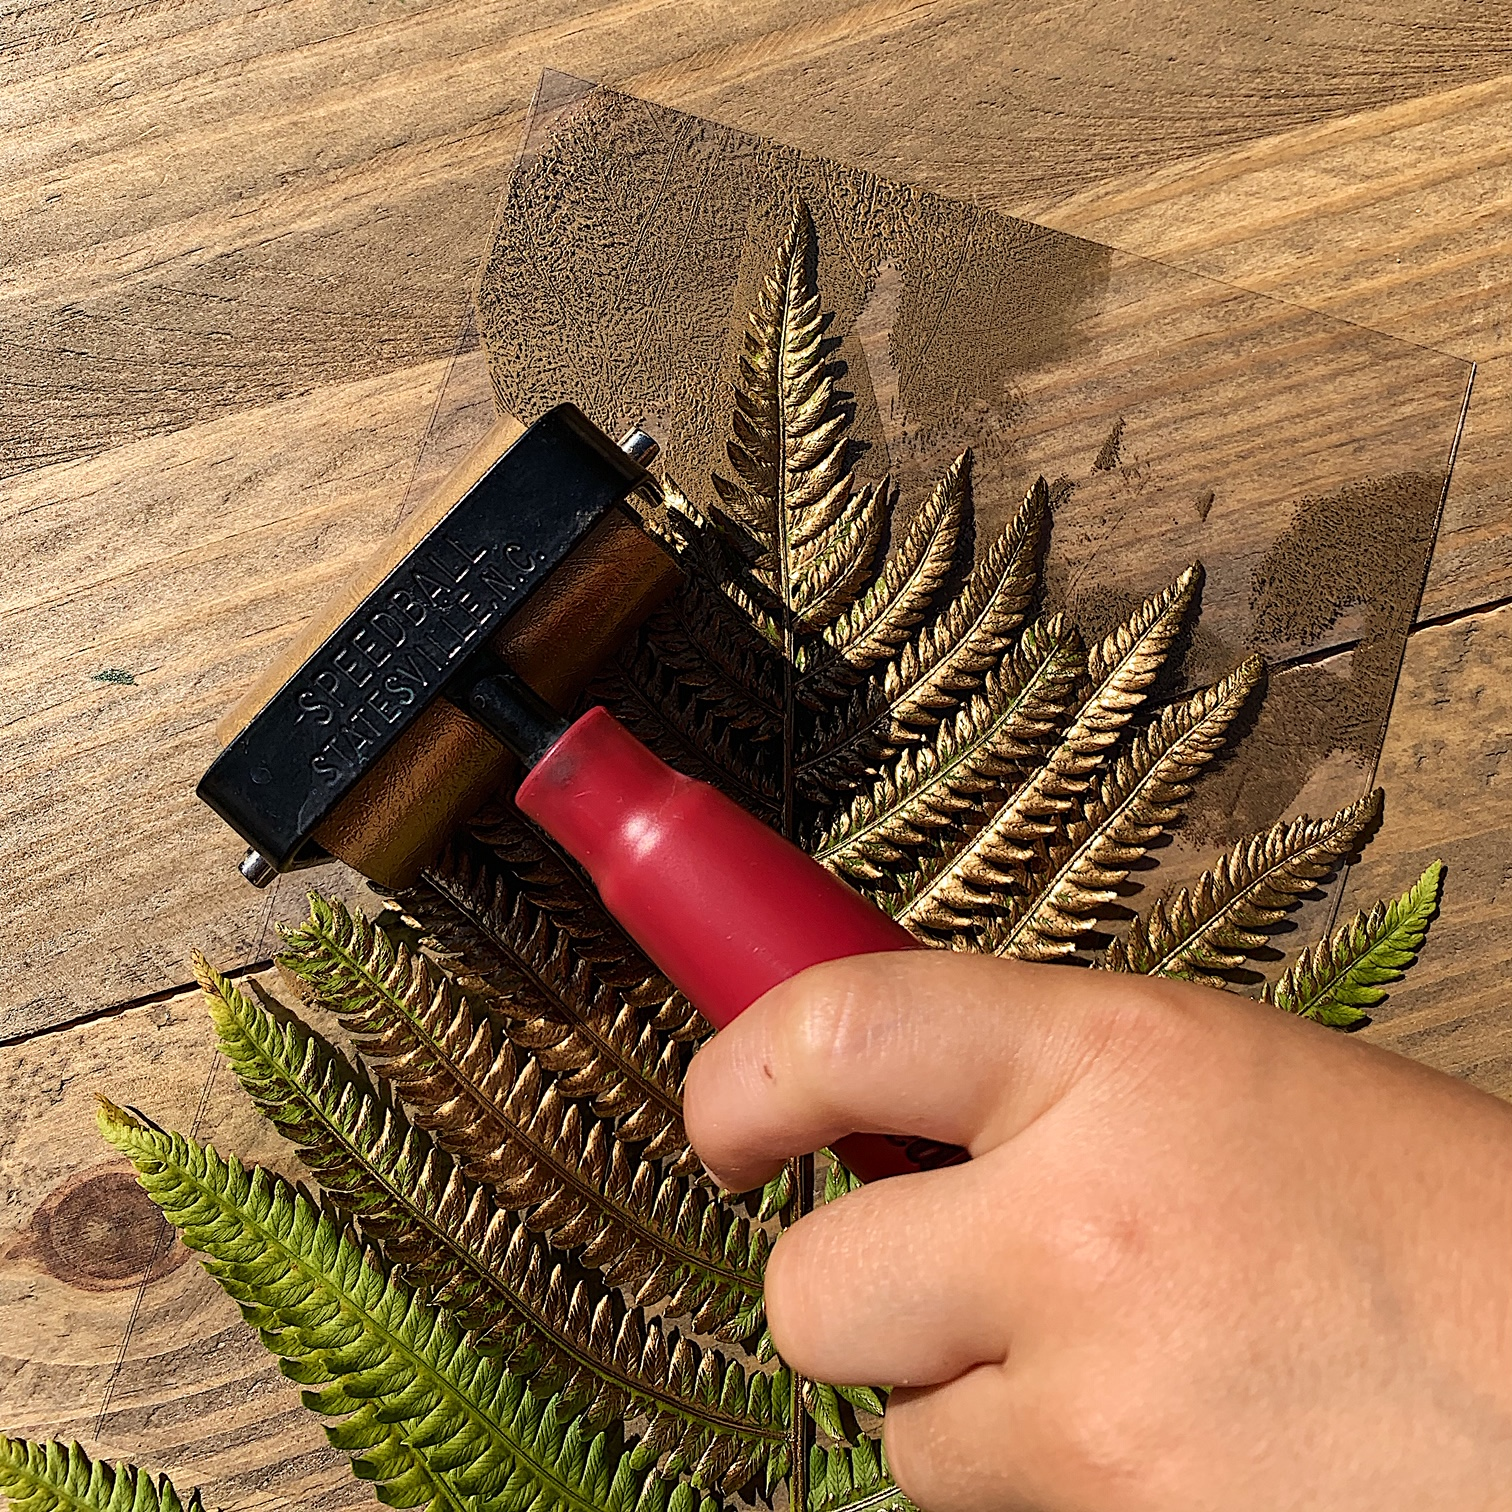 Ink your clipping - Depending on the fragility of your item, make sure you roll it out gently and in a direction that does not pull or tear your little treasure.